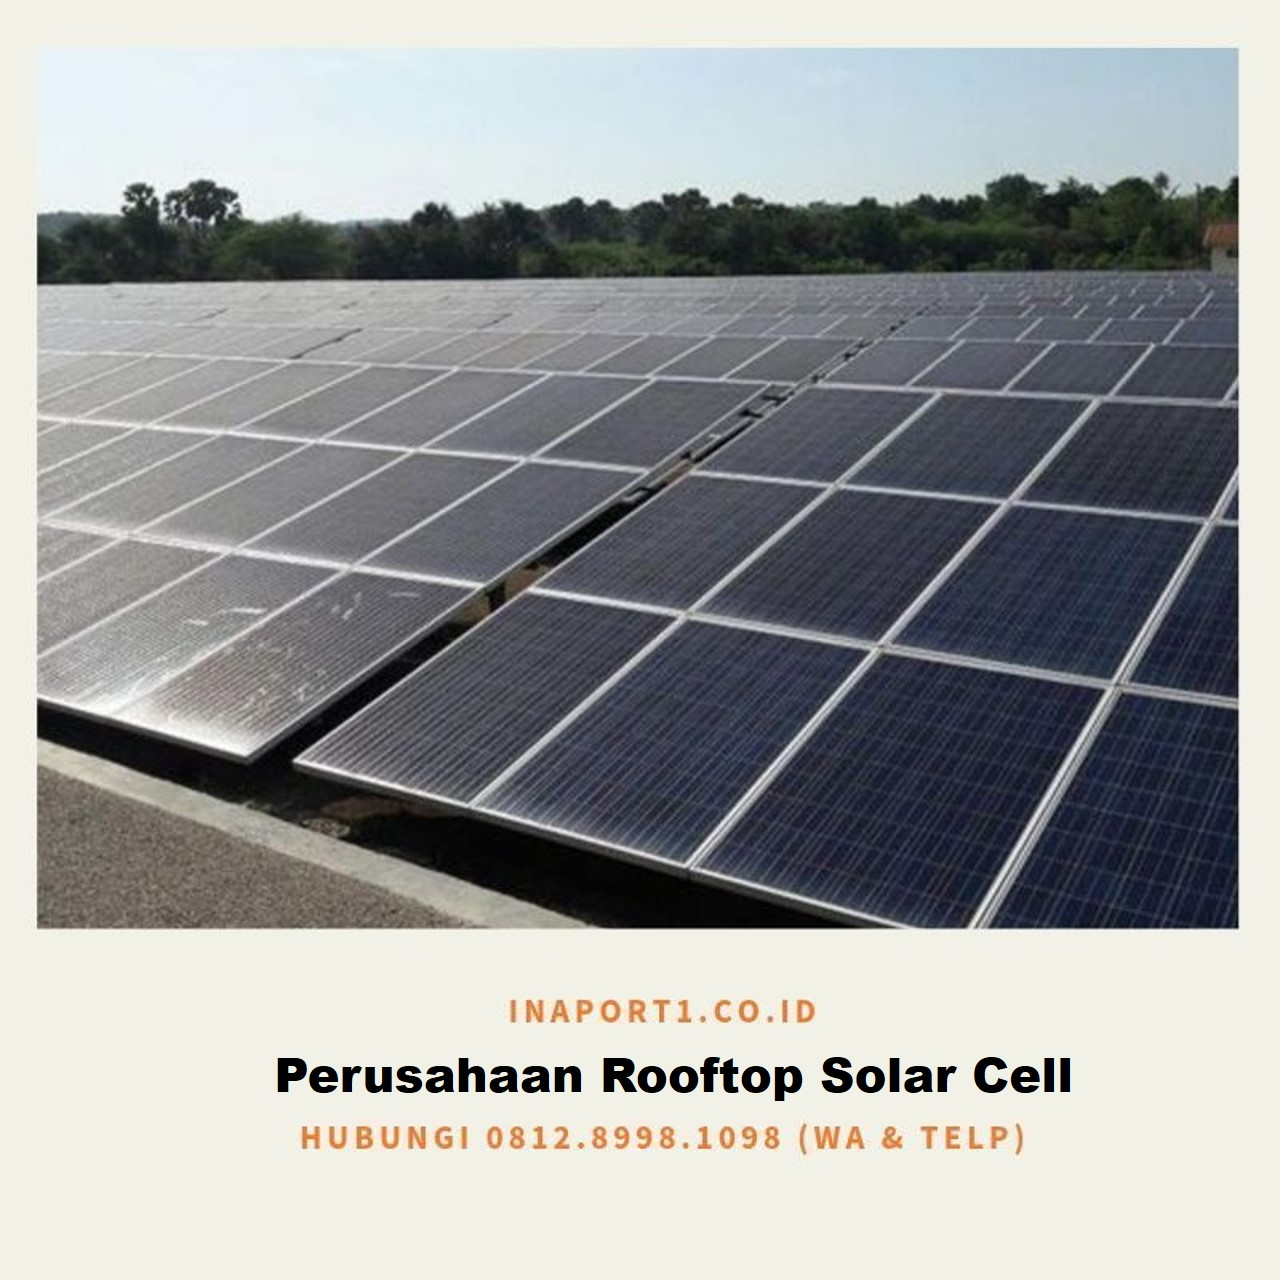 Panel Surya Rooftop Wates, Rooftop Solar Panel Wates, Solar Panel On Rooftop Wates, Solar Panel Rooftop Wates, Rooftop Panel Surya Wates, Rooftop Solar Panel Indonesia Wates, Rooftop Panel Surya Rumah Wates, Rooftop Panel Surya Pabrik Wates, Rooftop Panel Surya Perusahaan Wates, Rooftop Panel Surya Apartemen Wates, Rooftop Panel Surya Apartment Wates, Rooftop Panel Surya Perumahan Wates, Rooftop Solar Panel Rumah Wates, Rooftop Solar Panel Pabrik Wates, Rooftop Solar Panel Perusahaan Wates, Rooftop Solar Panel Apartemen Wates, Rooftop Solar Panel Apartment Wates, Rooftop Solar Panel Perumahan} Wates